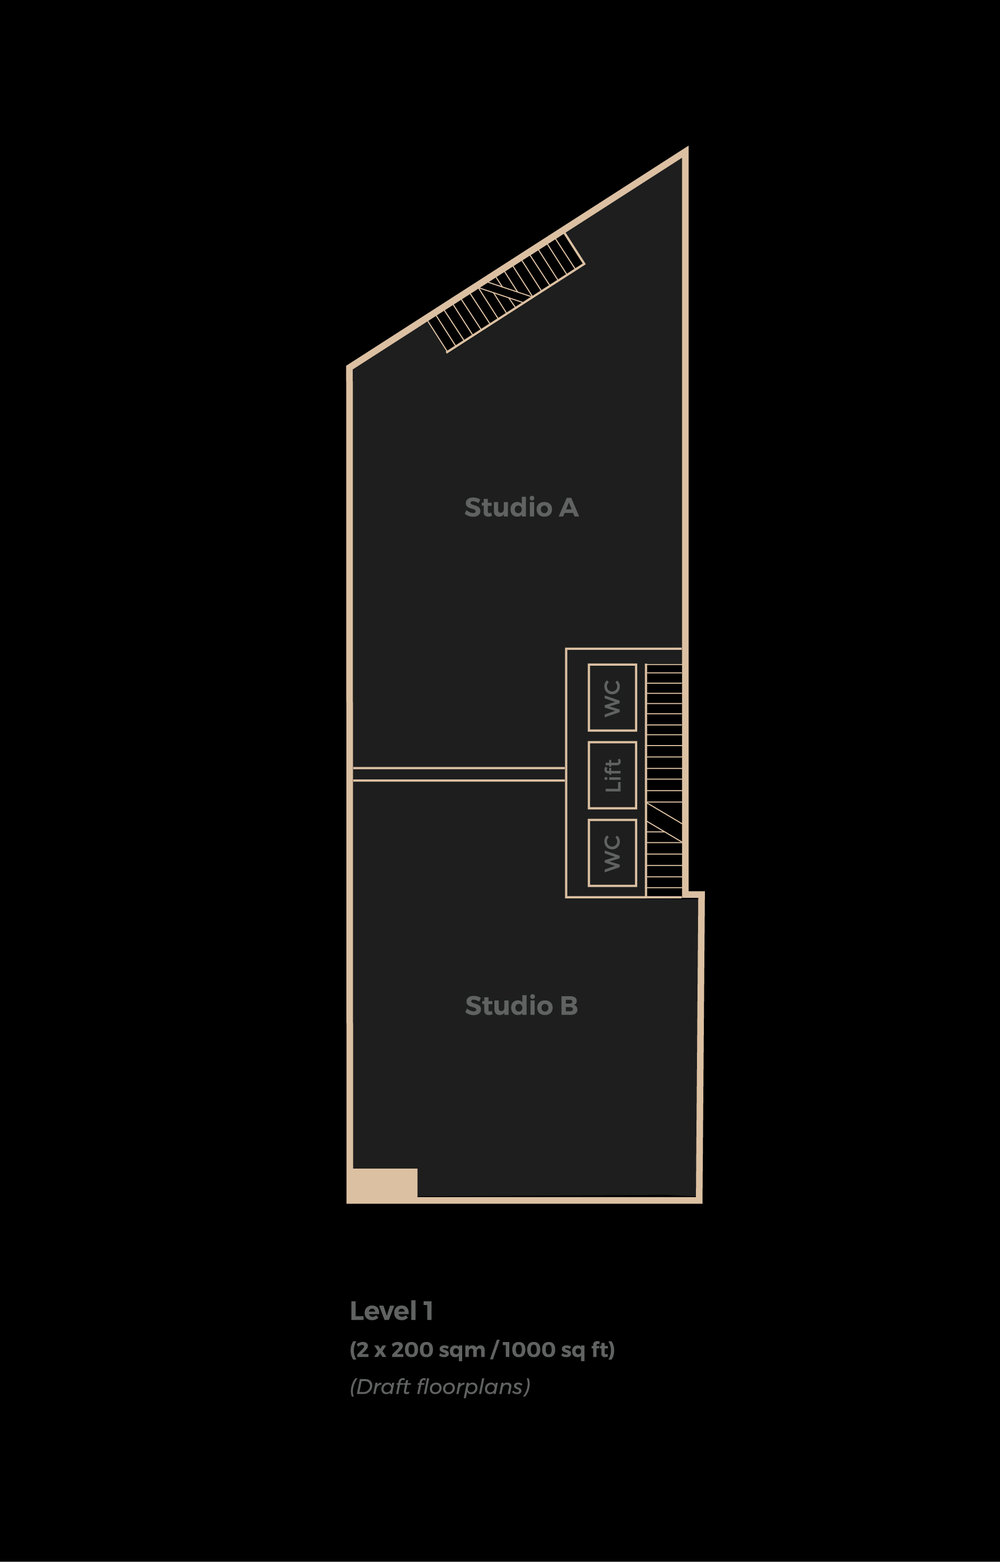 LTC001_Hat_House_Floorplans_black_outlined_V3-03.jpg